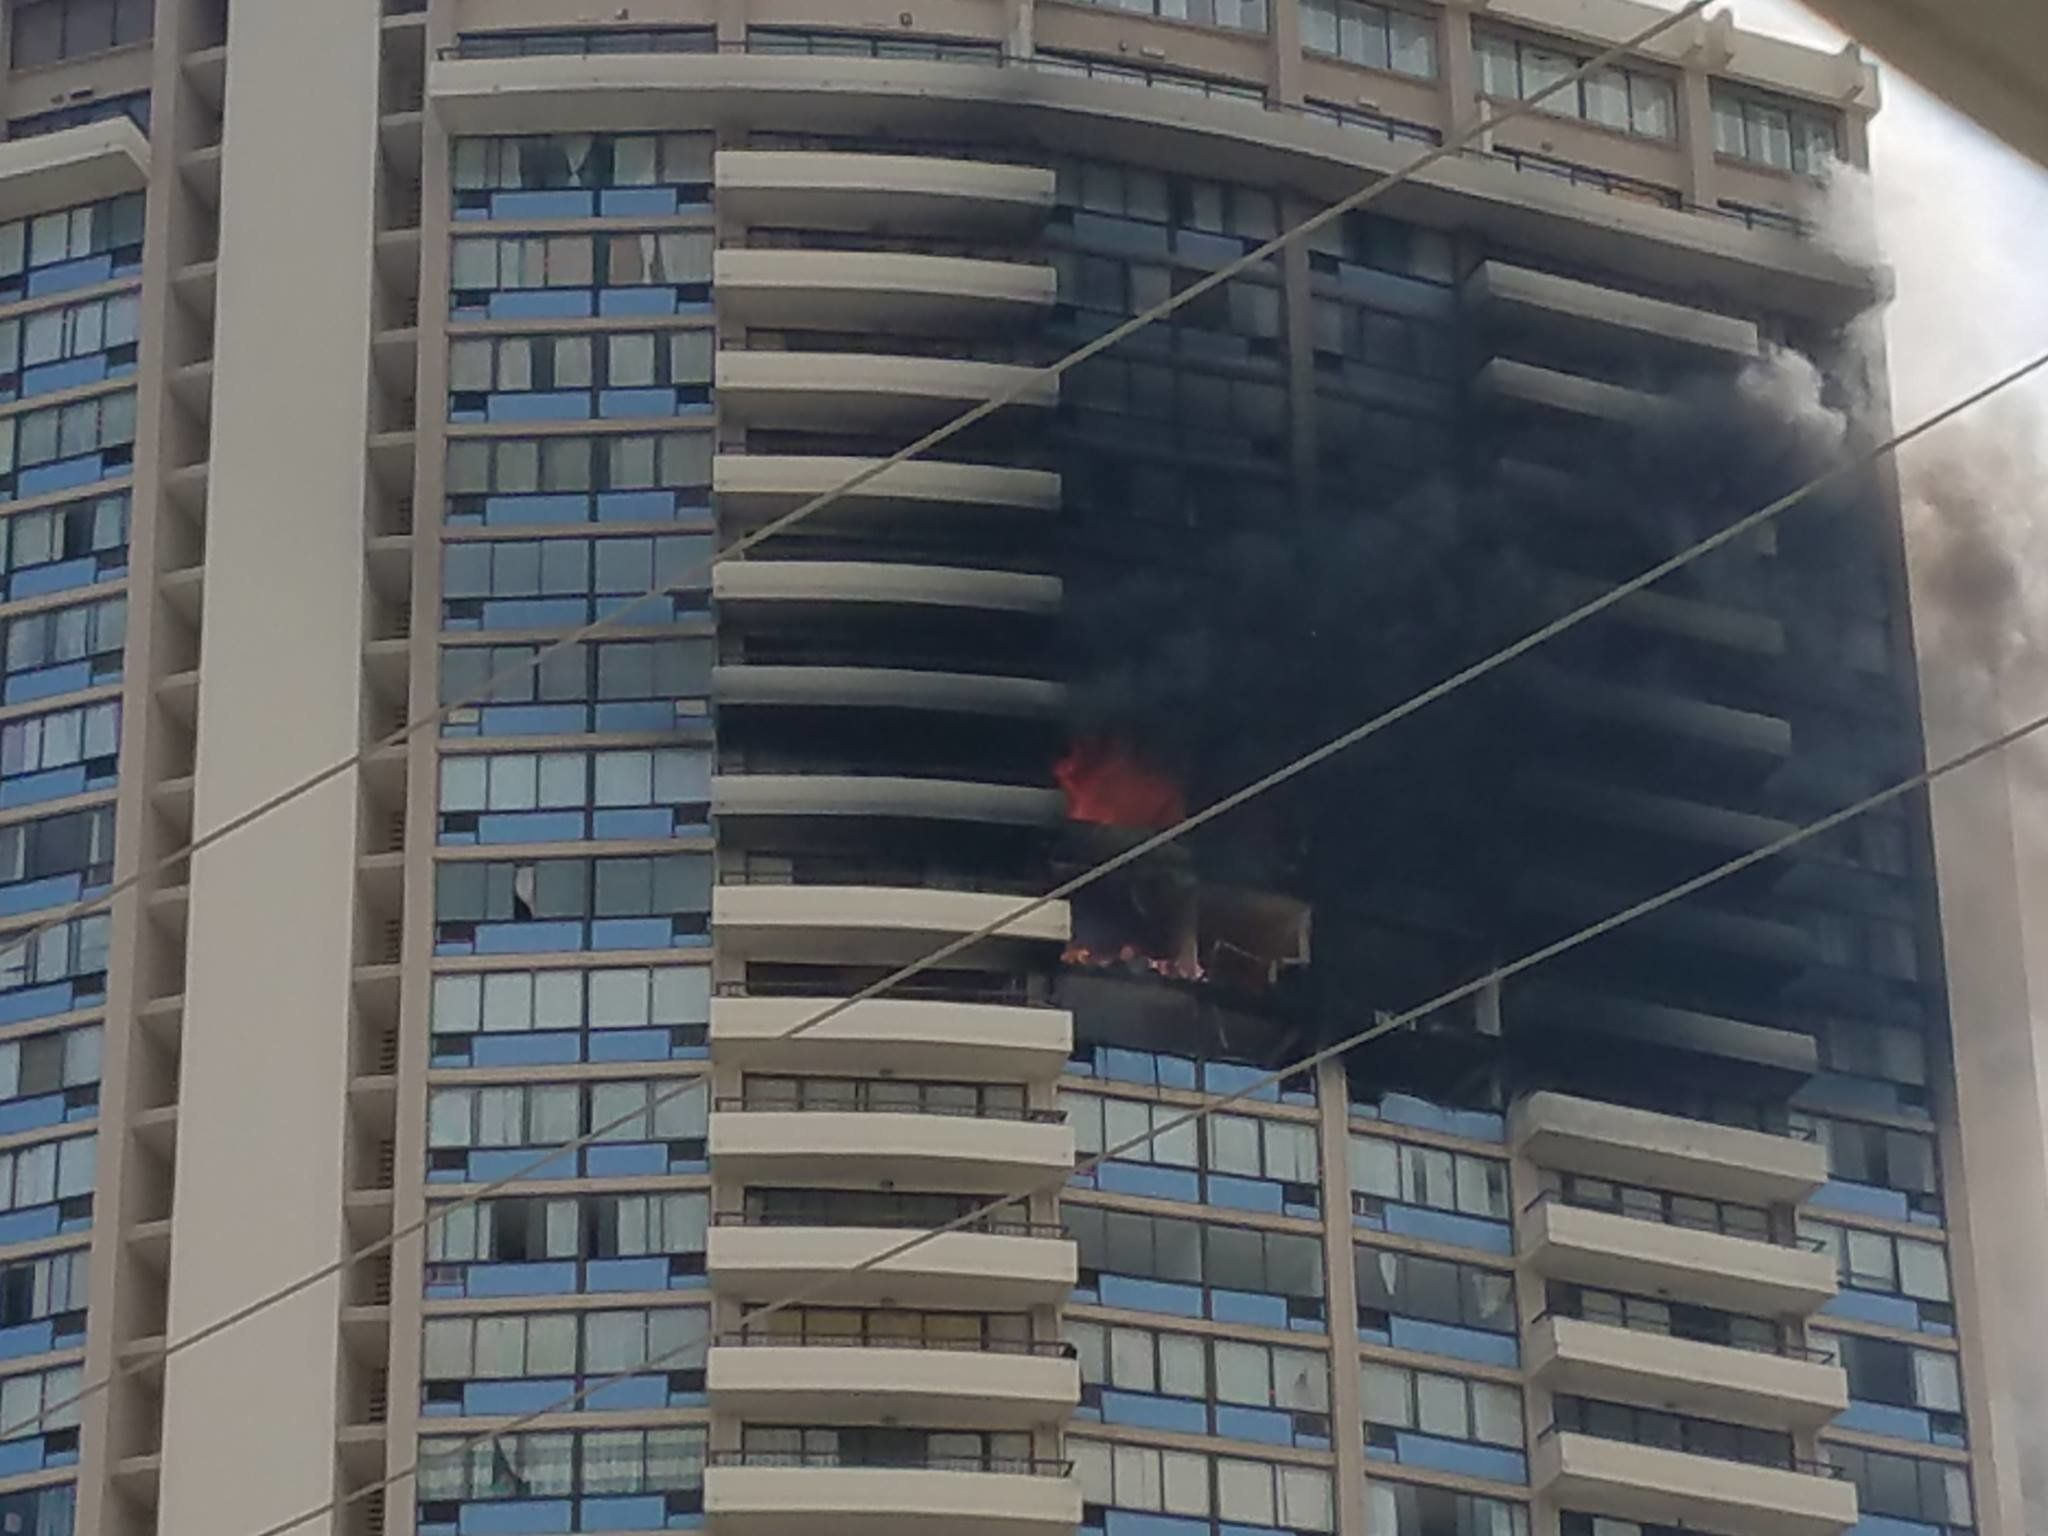 Joel Horiguchi, a resident of Marco Polo, took this photo of the building on fire about 4:50 p.m. local time.